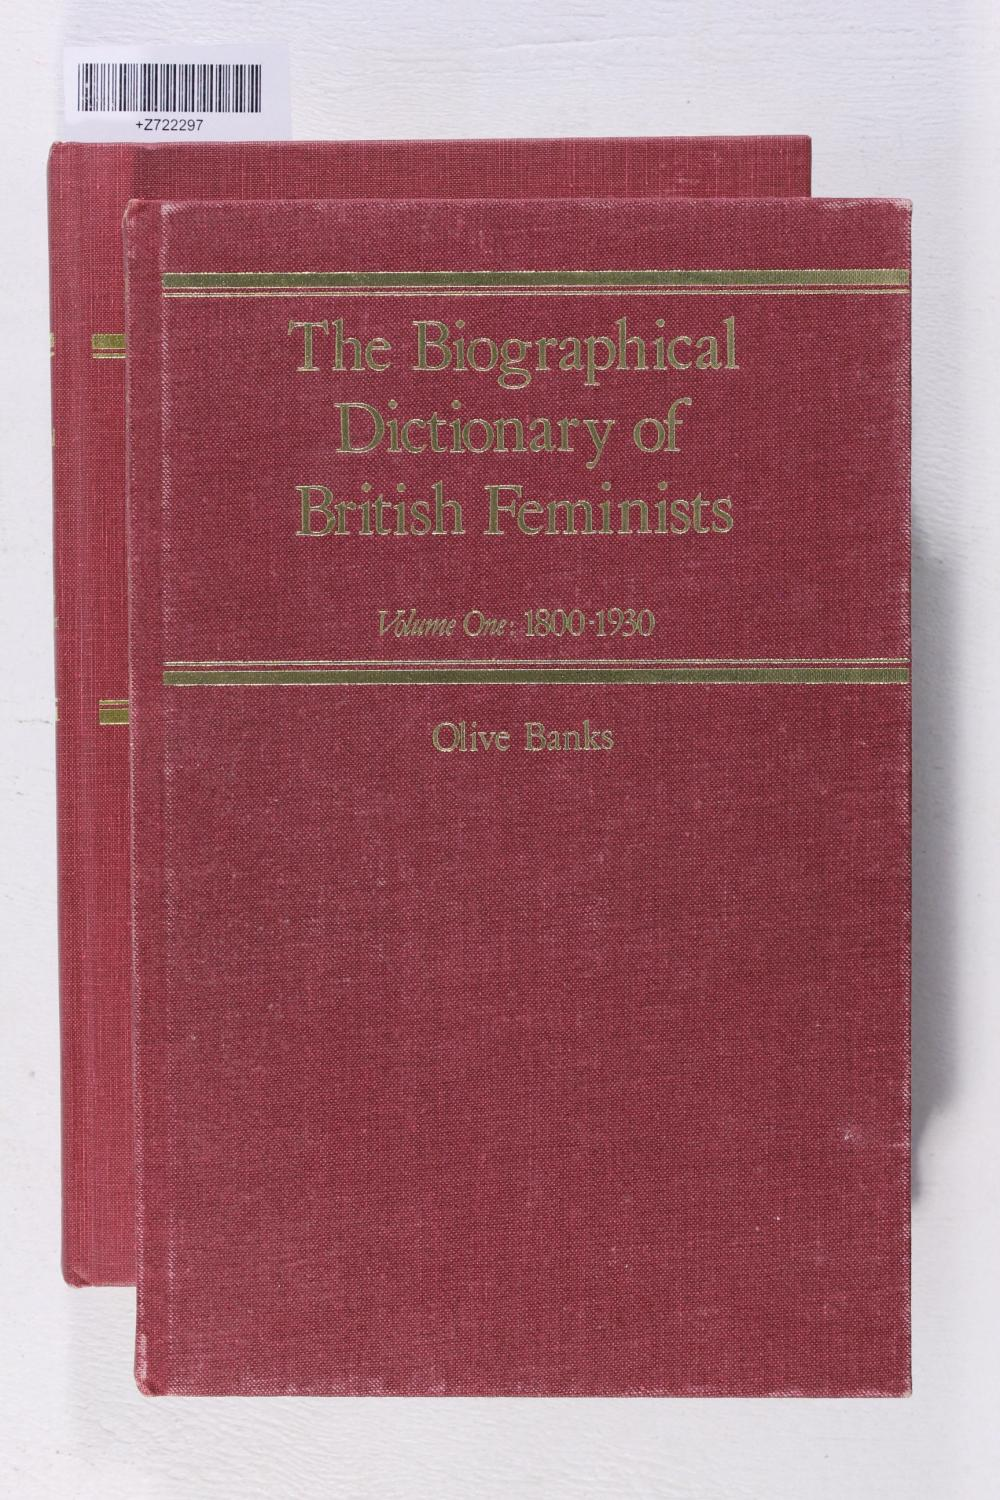 The Biographical Dictionary of British Feminists: Vol. 1 - 1800 - 1930; Vol. 2 A Supplement, 1900 - 1945 - Banks, Olive